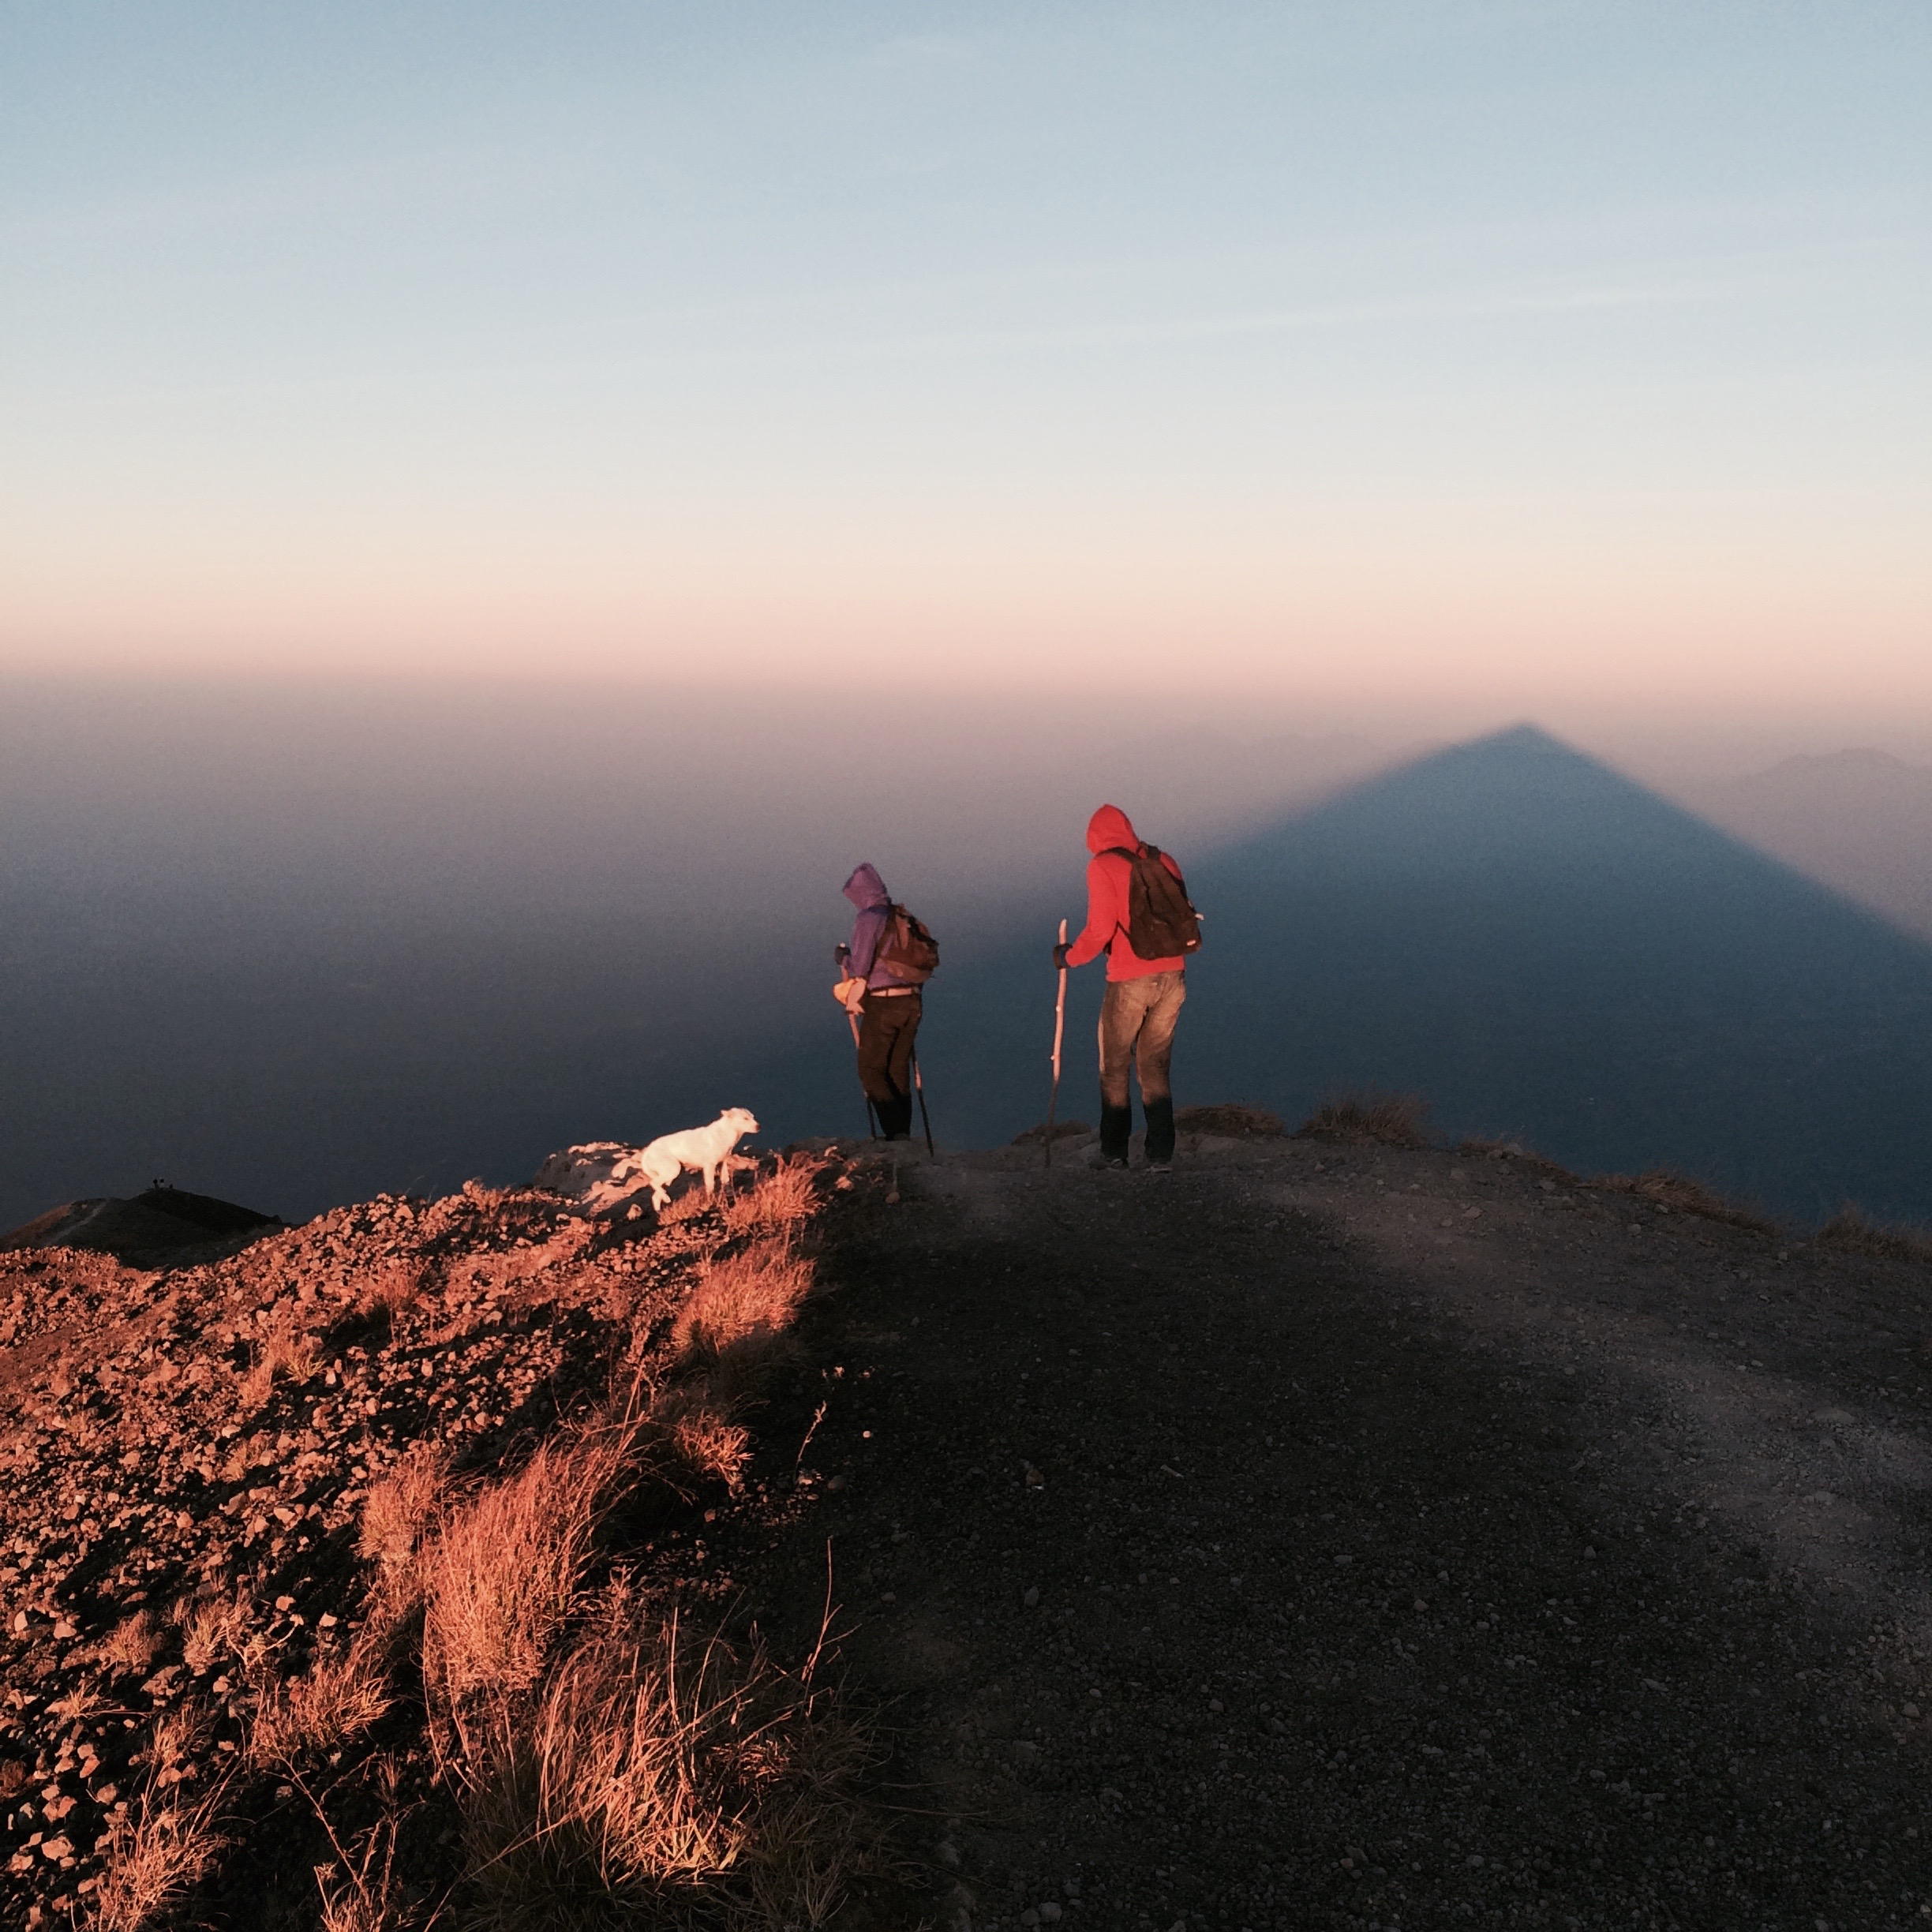 Hikers and the shadow of Mt Agung from the morning sun on clouds